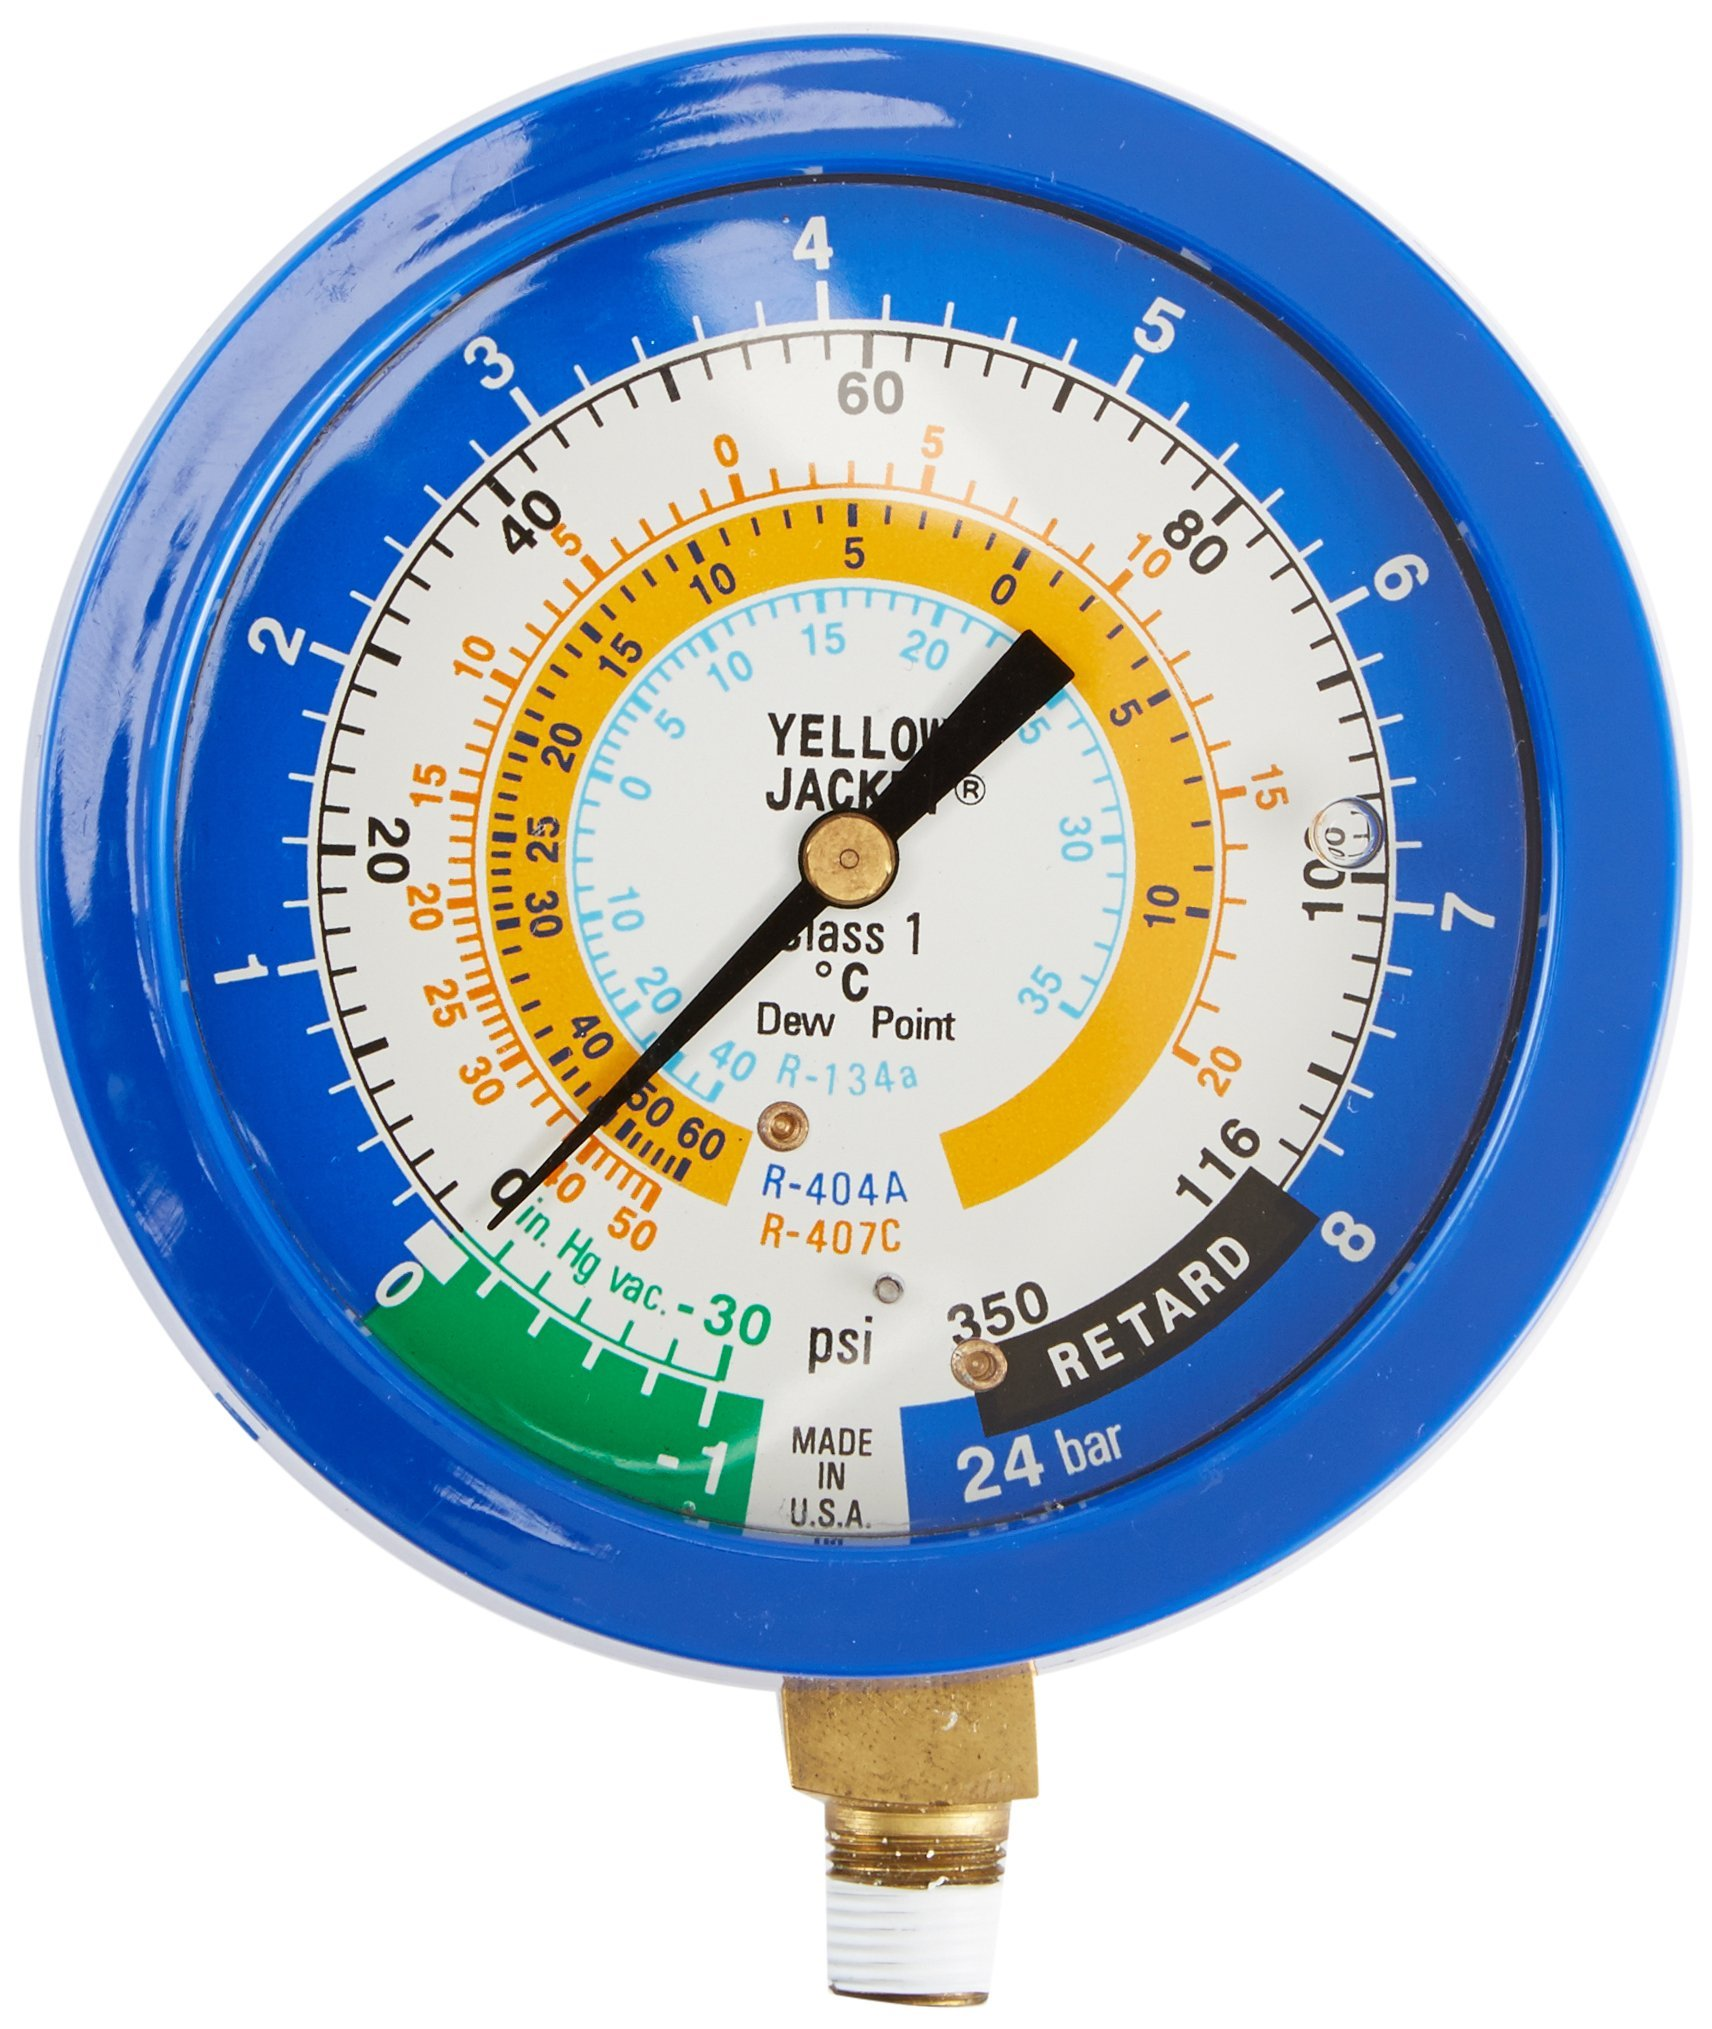 Yellow Jacket 49522 3-1/2'' Liquid-Filled Gauge (Degrees C) Blue Compound Manifold, 30''-0-116 psi, R-134A/404A/407C